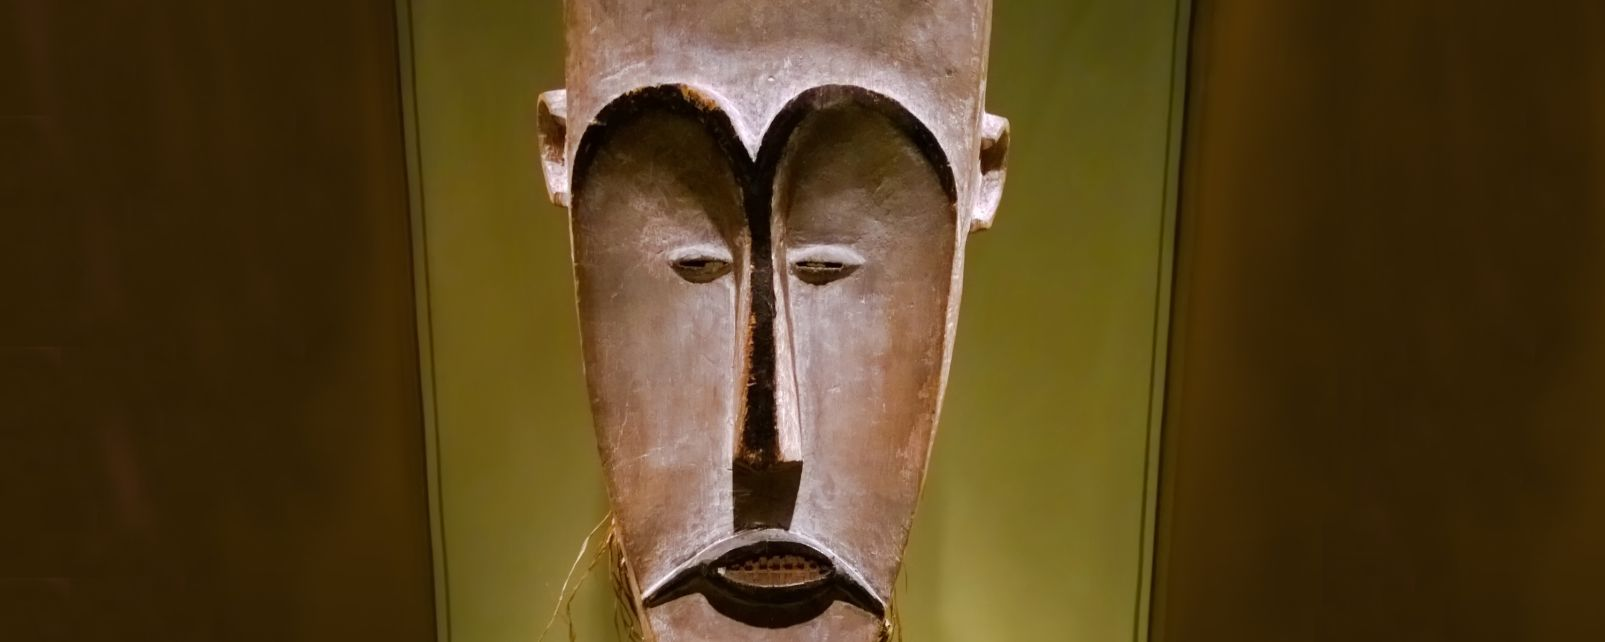 Les arts et la culture, Smithsonian African Art Museum., Washington, gabon, fang, masque, art